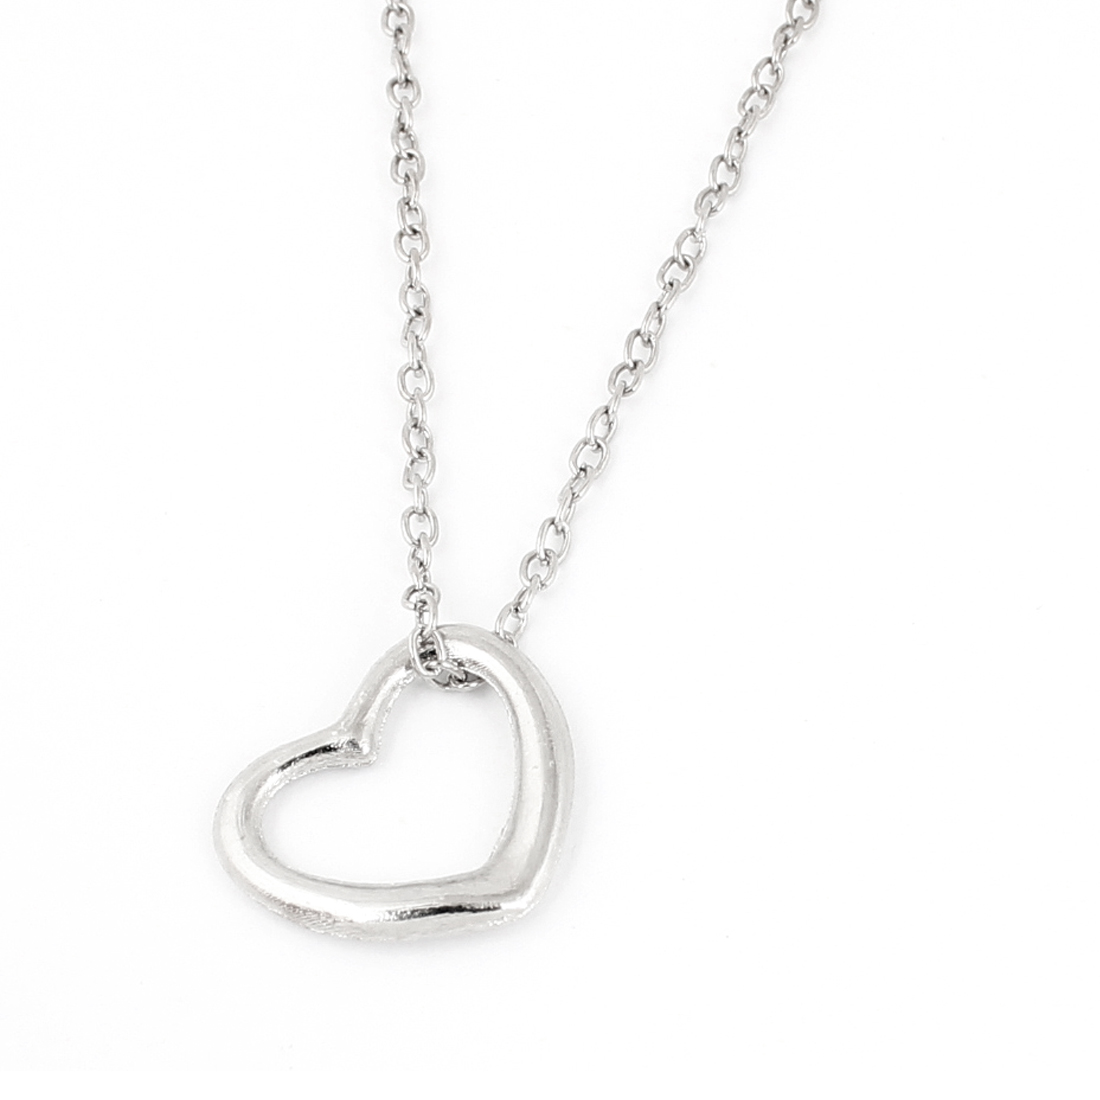 Silver Tone Hollow out Peach Heart Clavicle Necklace for Lady